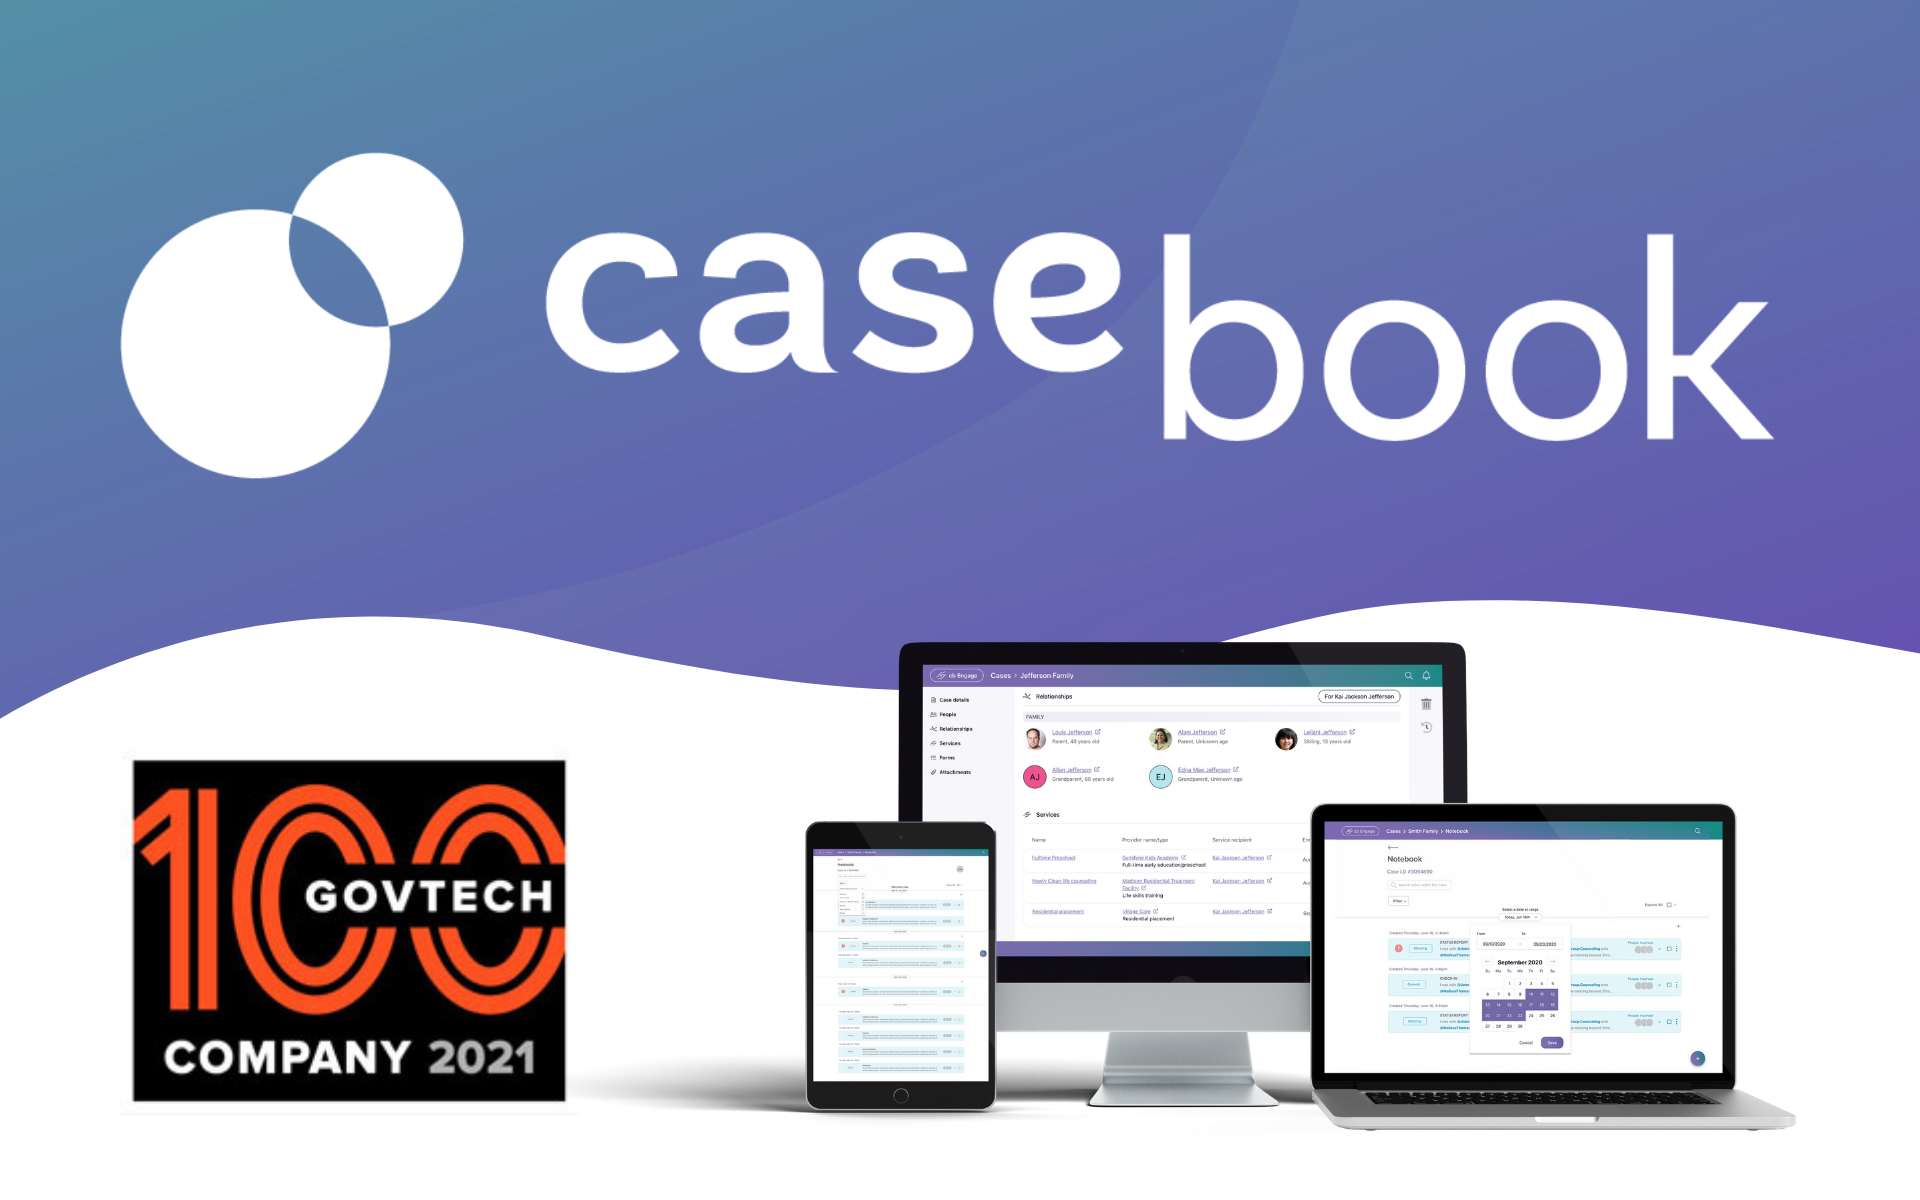 Casebook PBC named a GovTech 100 company for 2021 by Government Technology Magazine